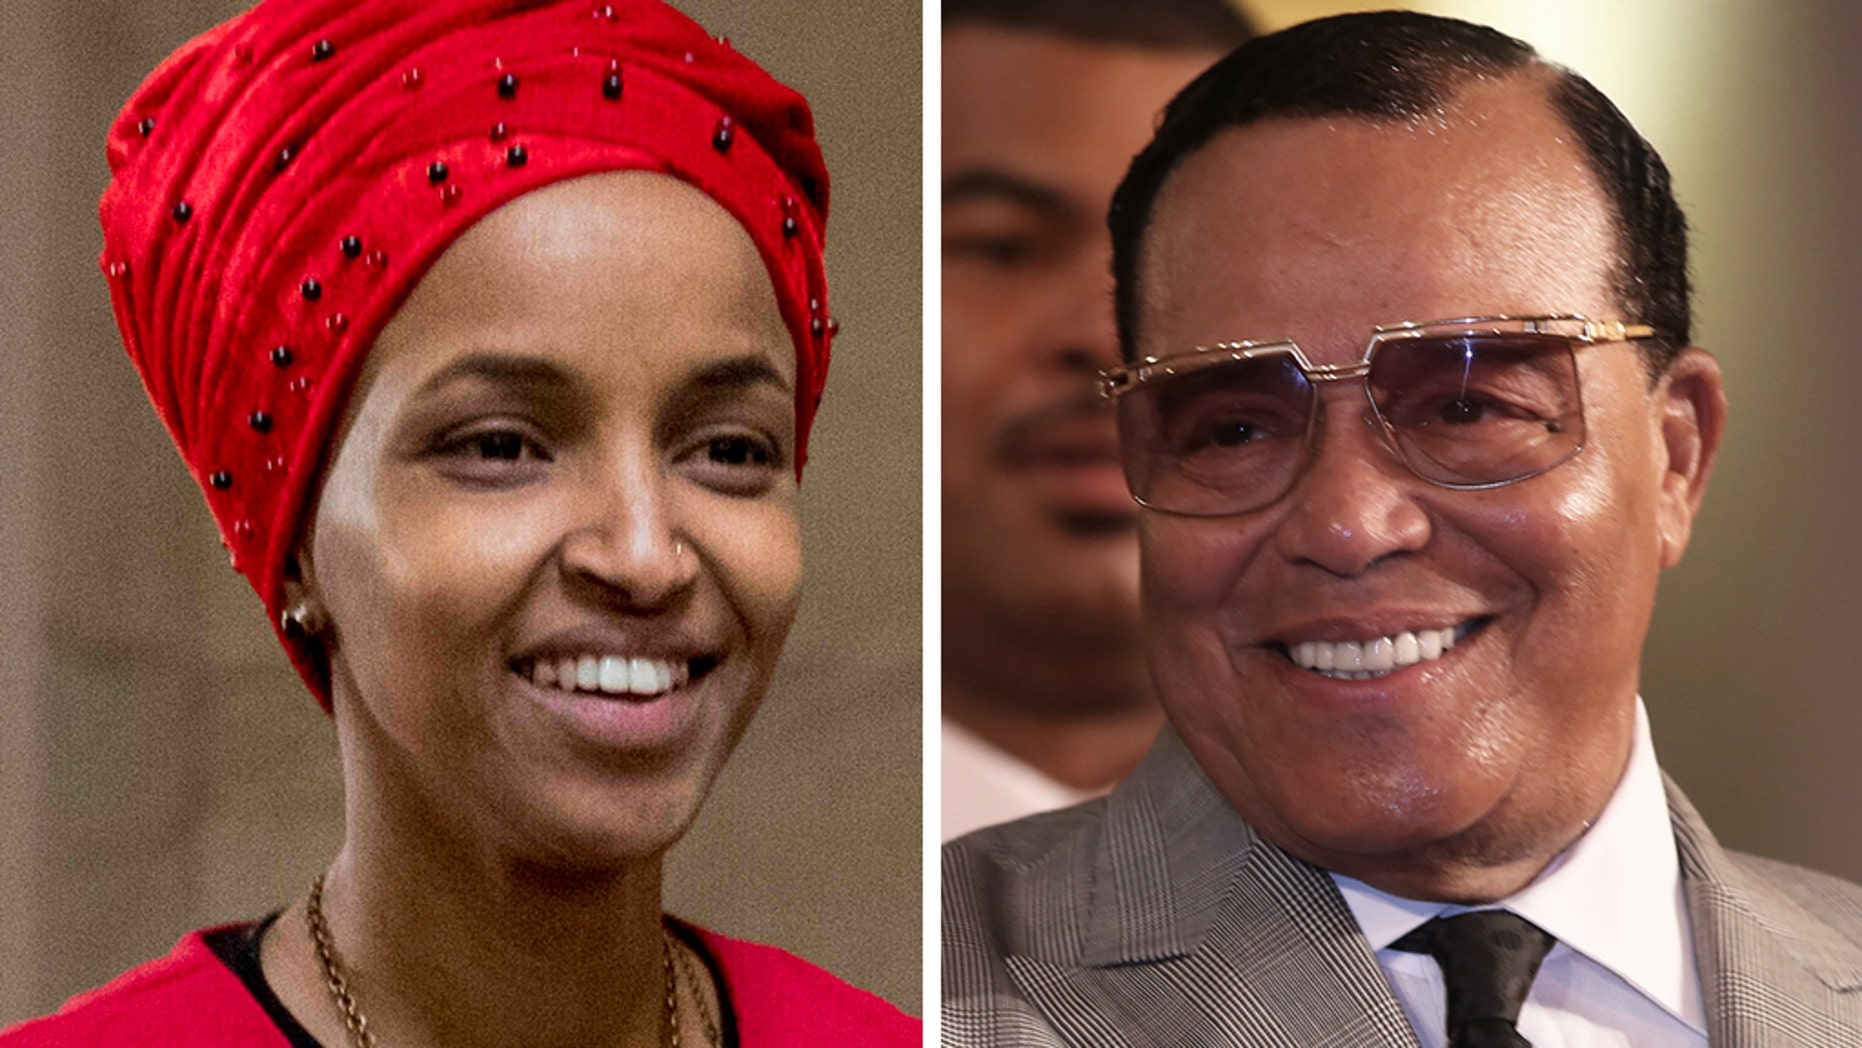 Rep. Ilhan Omar, D-Minn., and Nation of Islam leader Louis Farrakhan